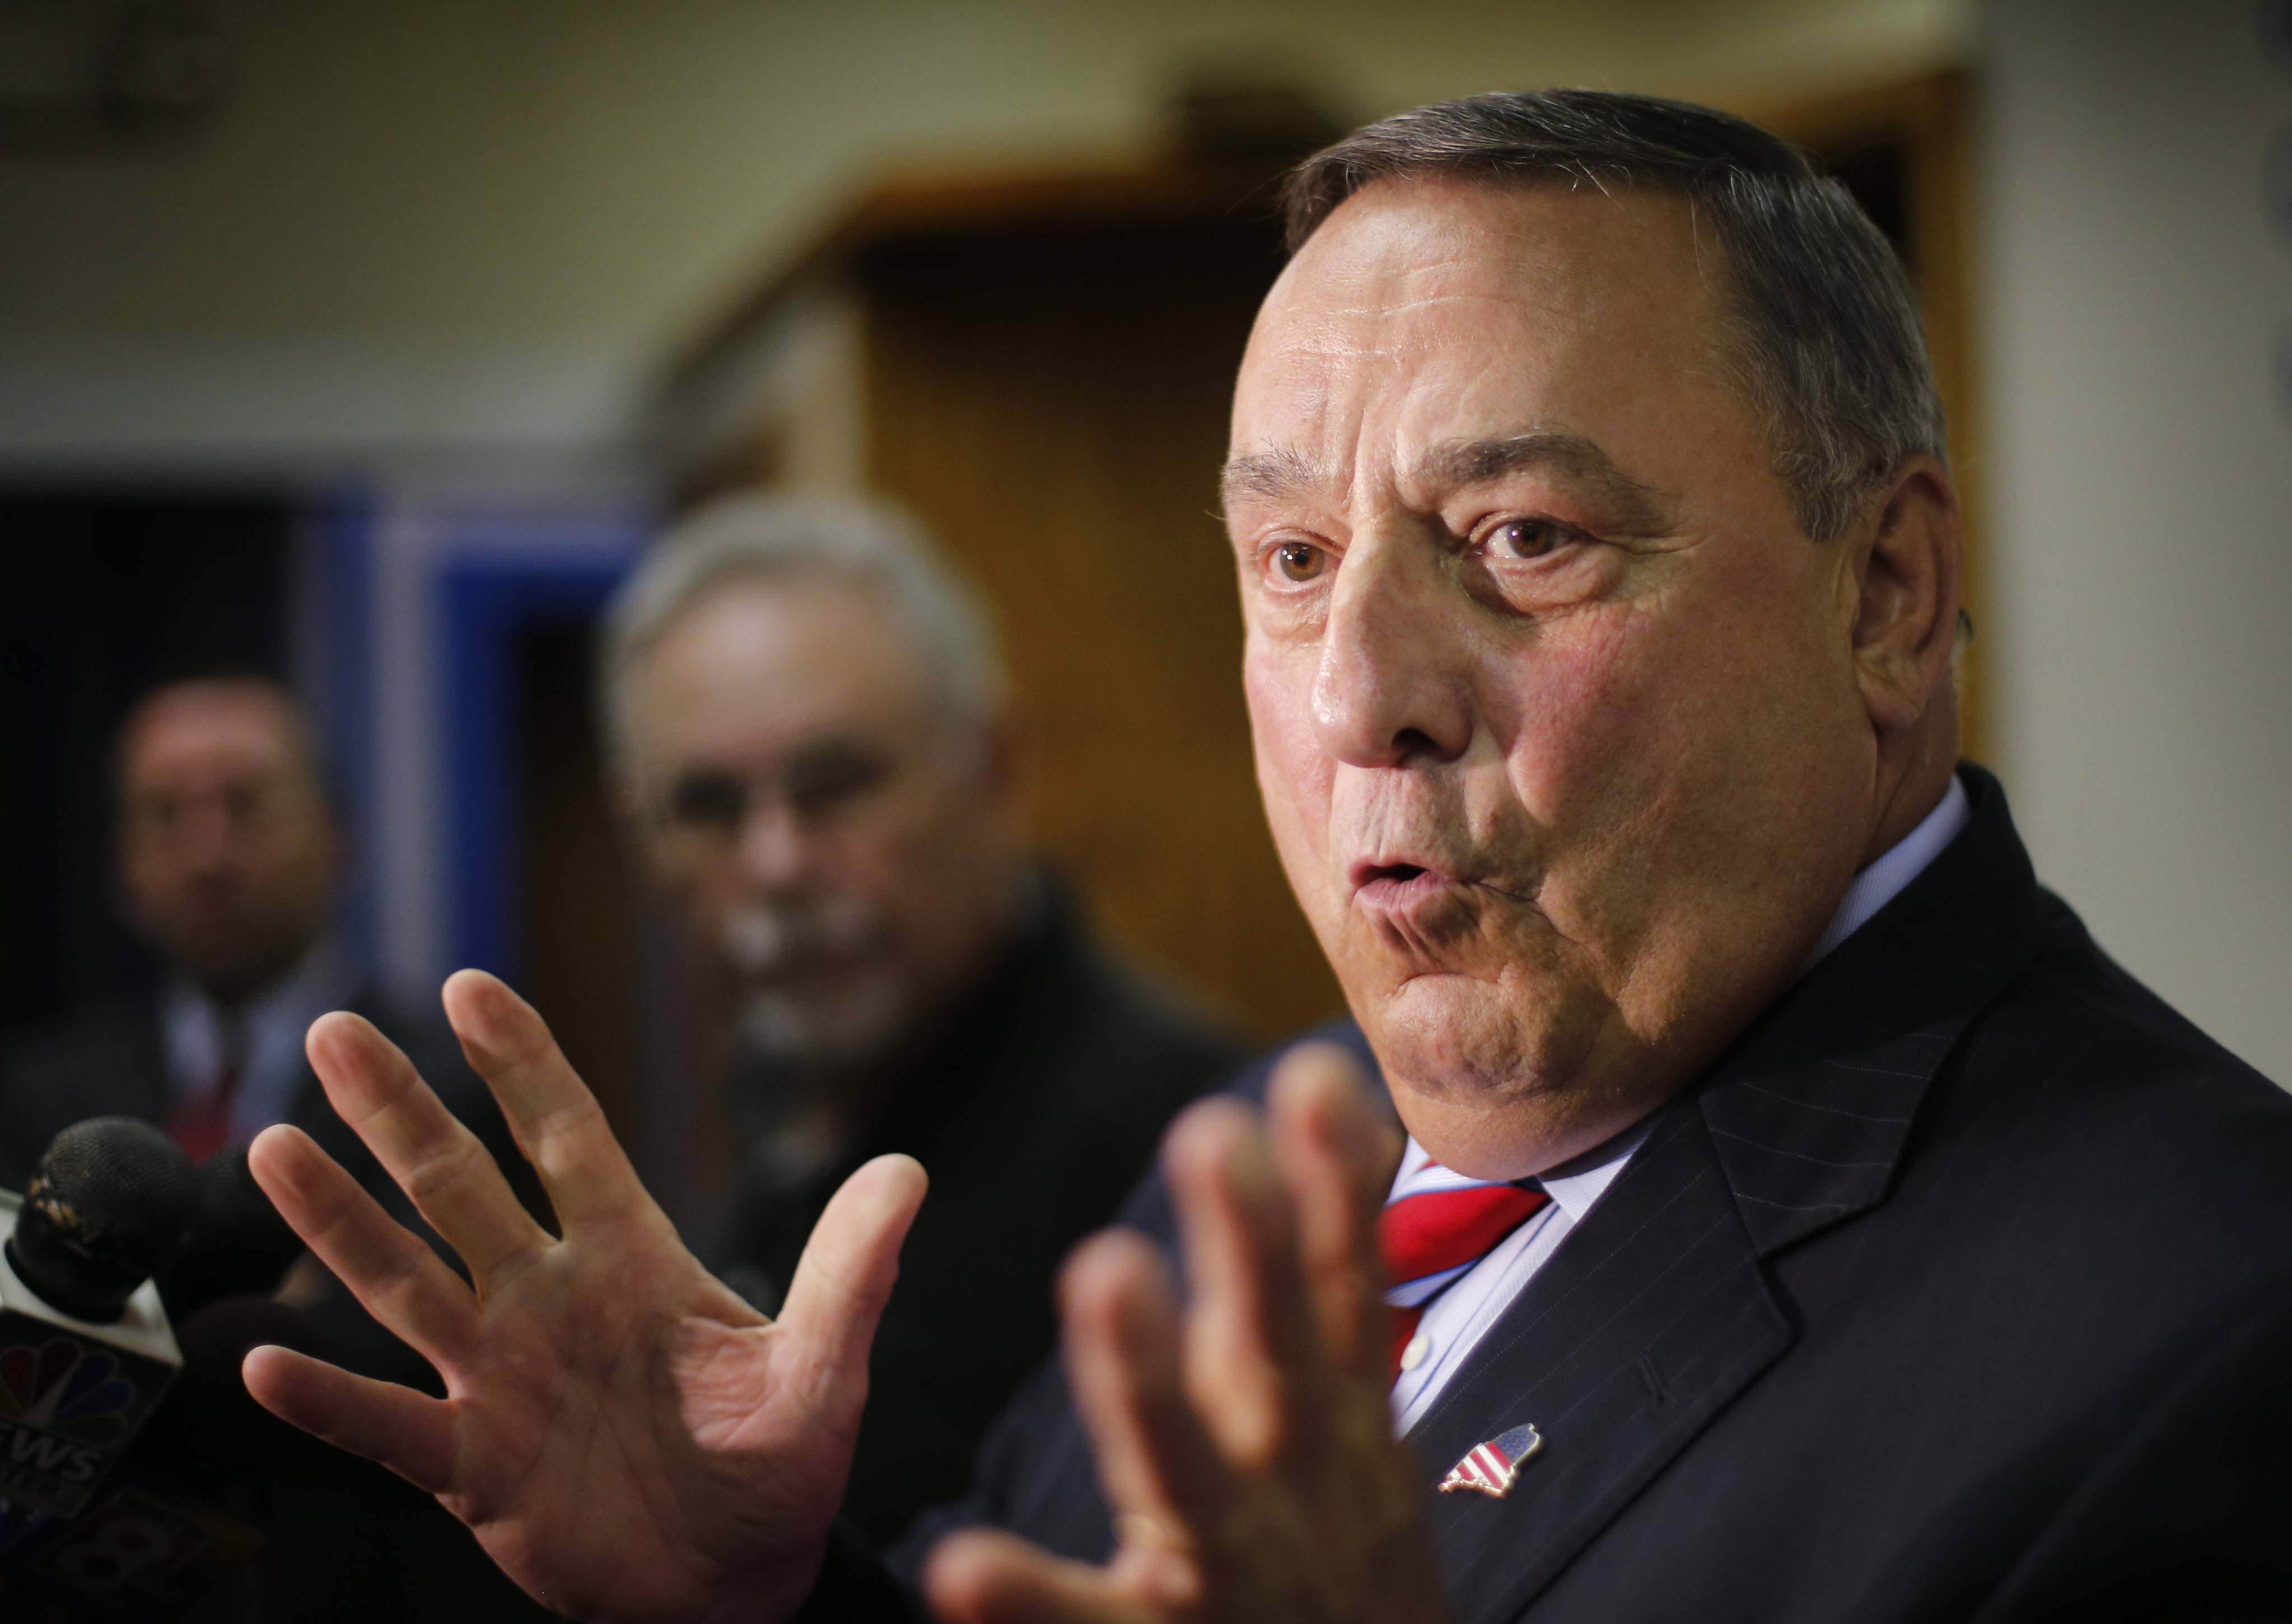 Maine Gov. Paul LePage, the governor of the state with the largest percentage of white people, placed thousands of miles from the southern border, has thrust the issue of immigration to the forefront with his criticism over the federal government's placement of eight immigrants in the state.